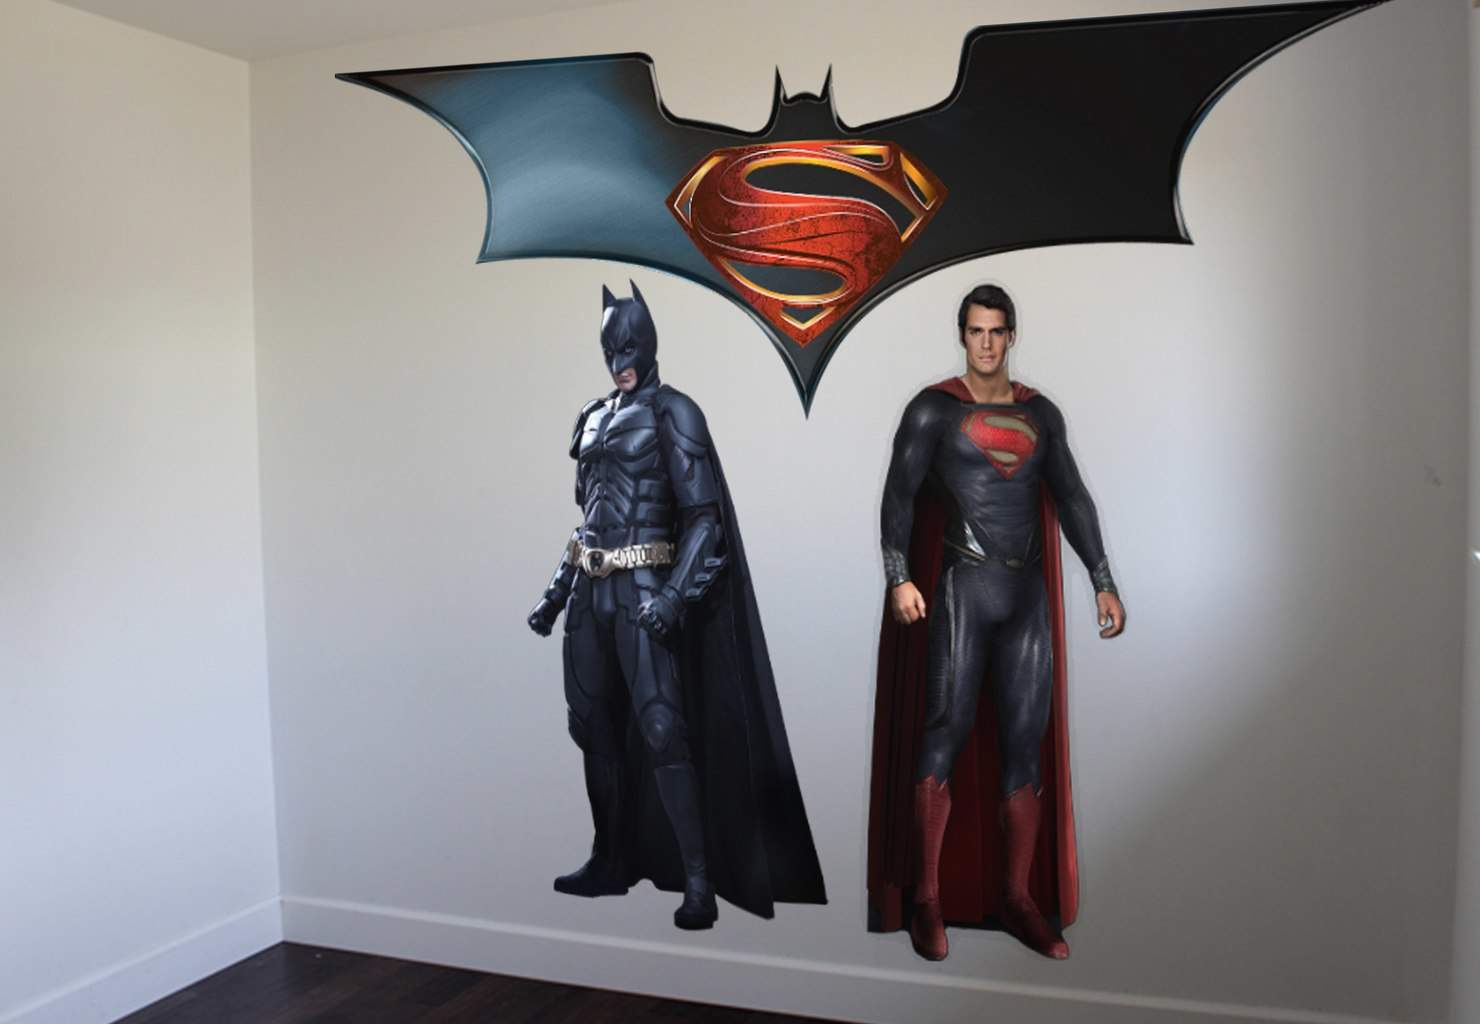 Superman V Batman Wall Decal Graphic